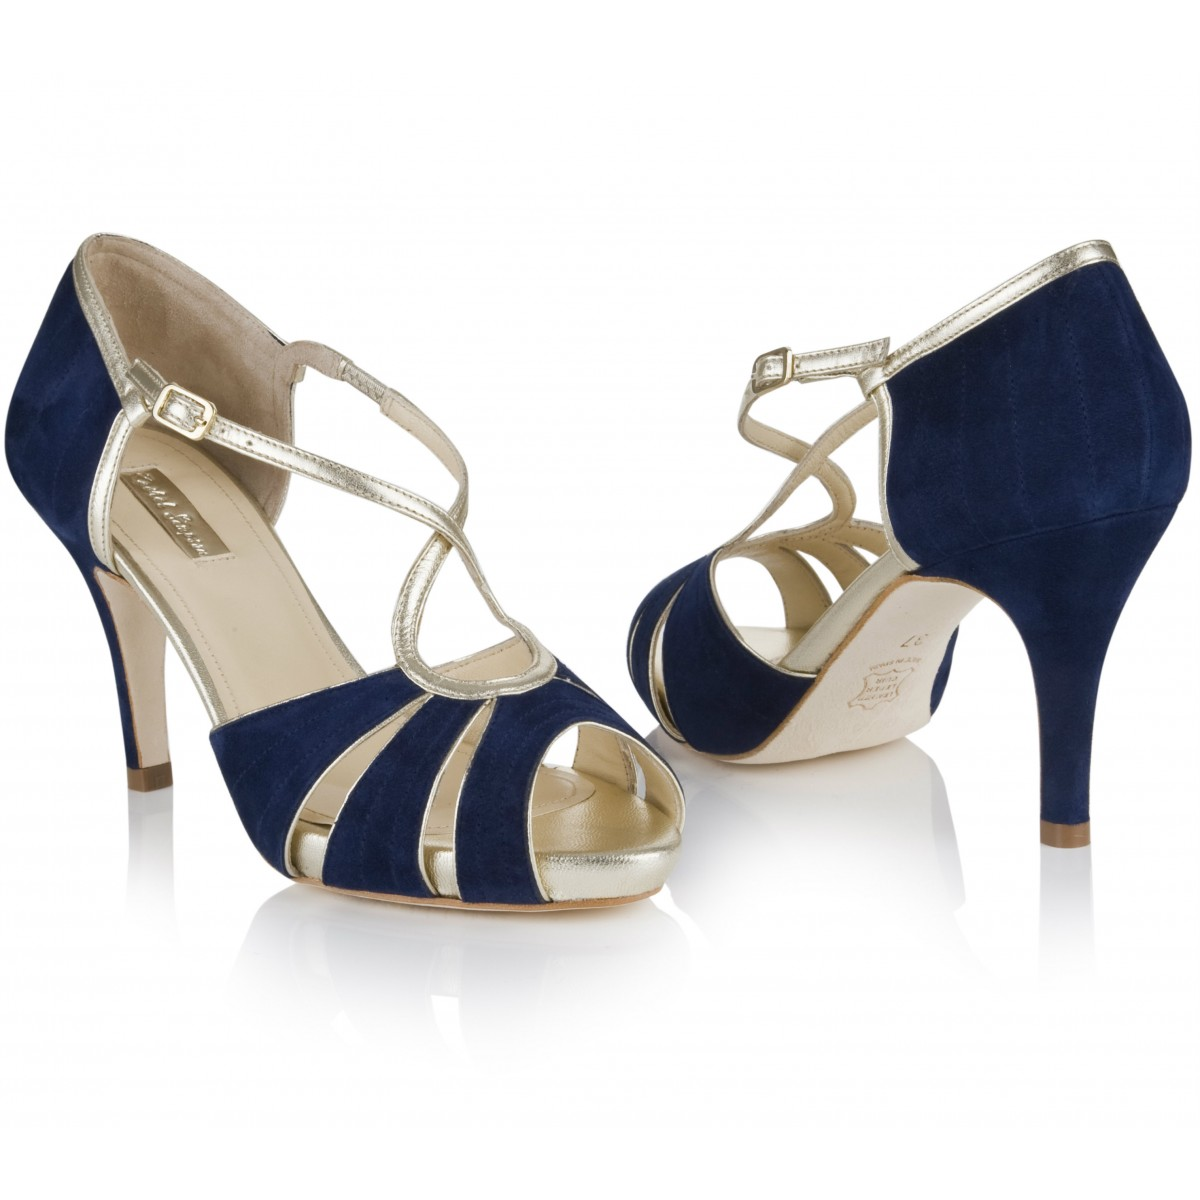 Victoria shoes navy shoe rachel simpson elegant steps victoria shoes navy shoe rachel simpson elegant steps alternative wedding shoe junglespirit Choice Image